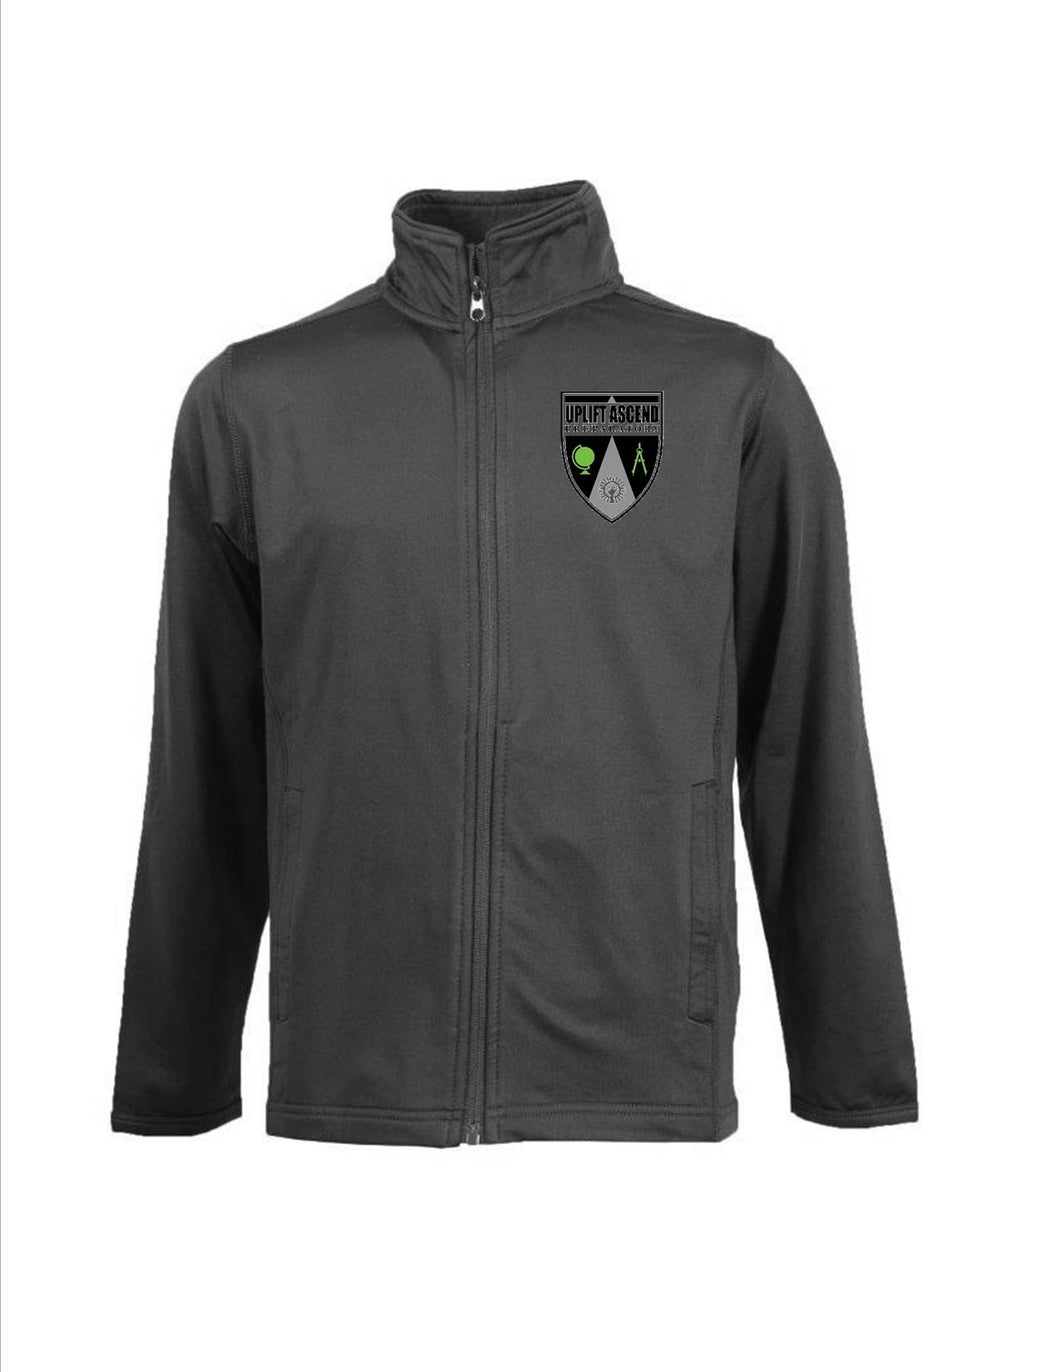 YOUTH FULL ZIP PERFORMANCE JACKET W/LOGO